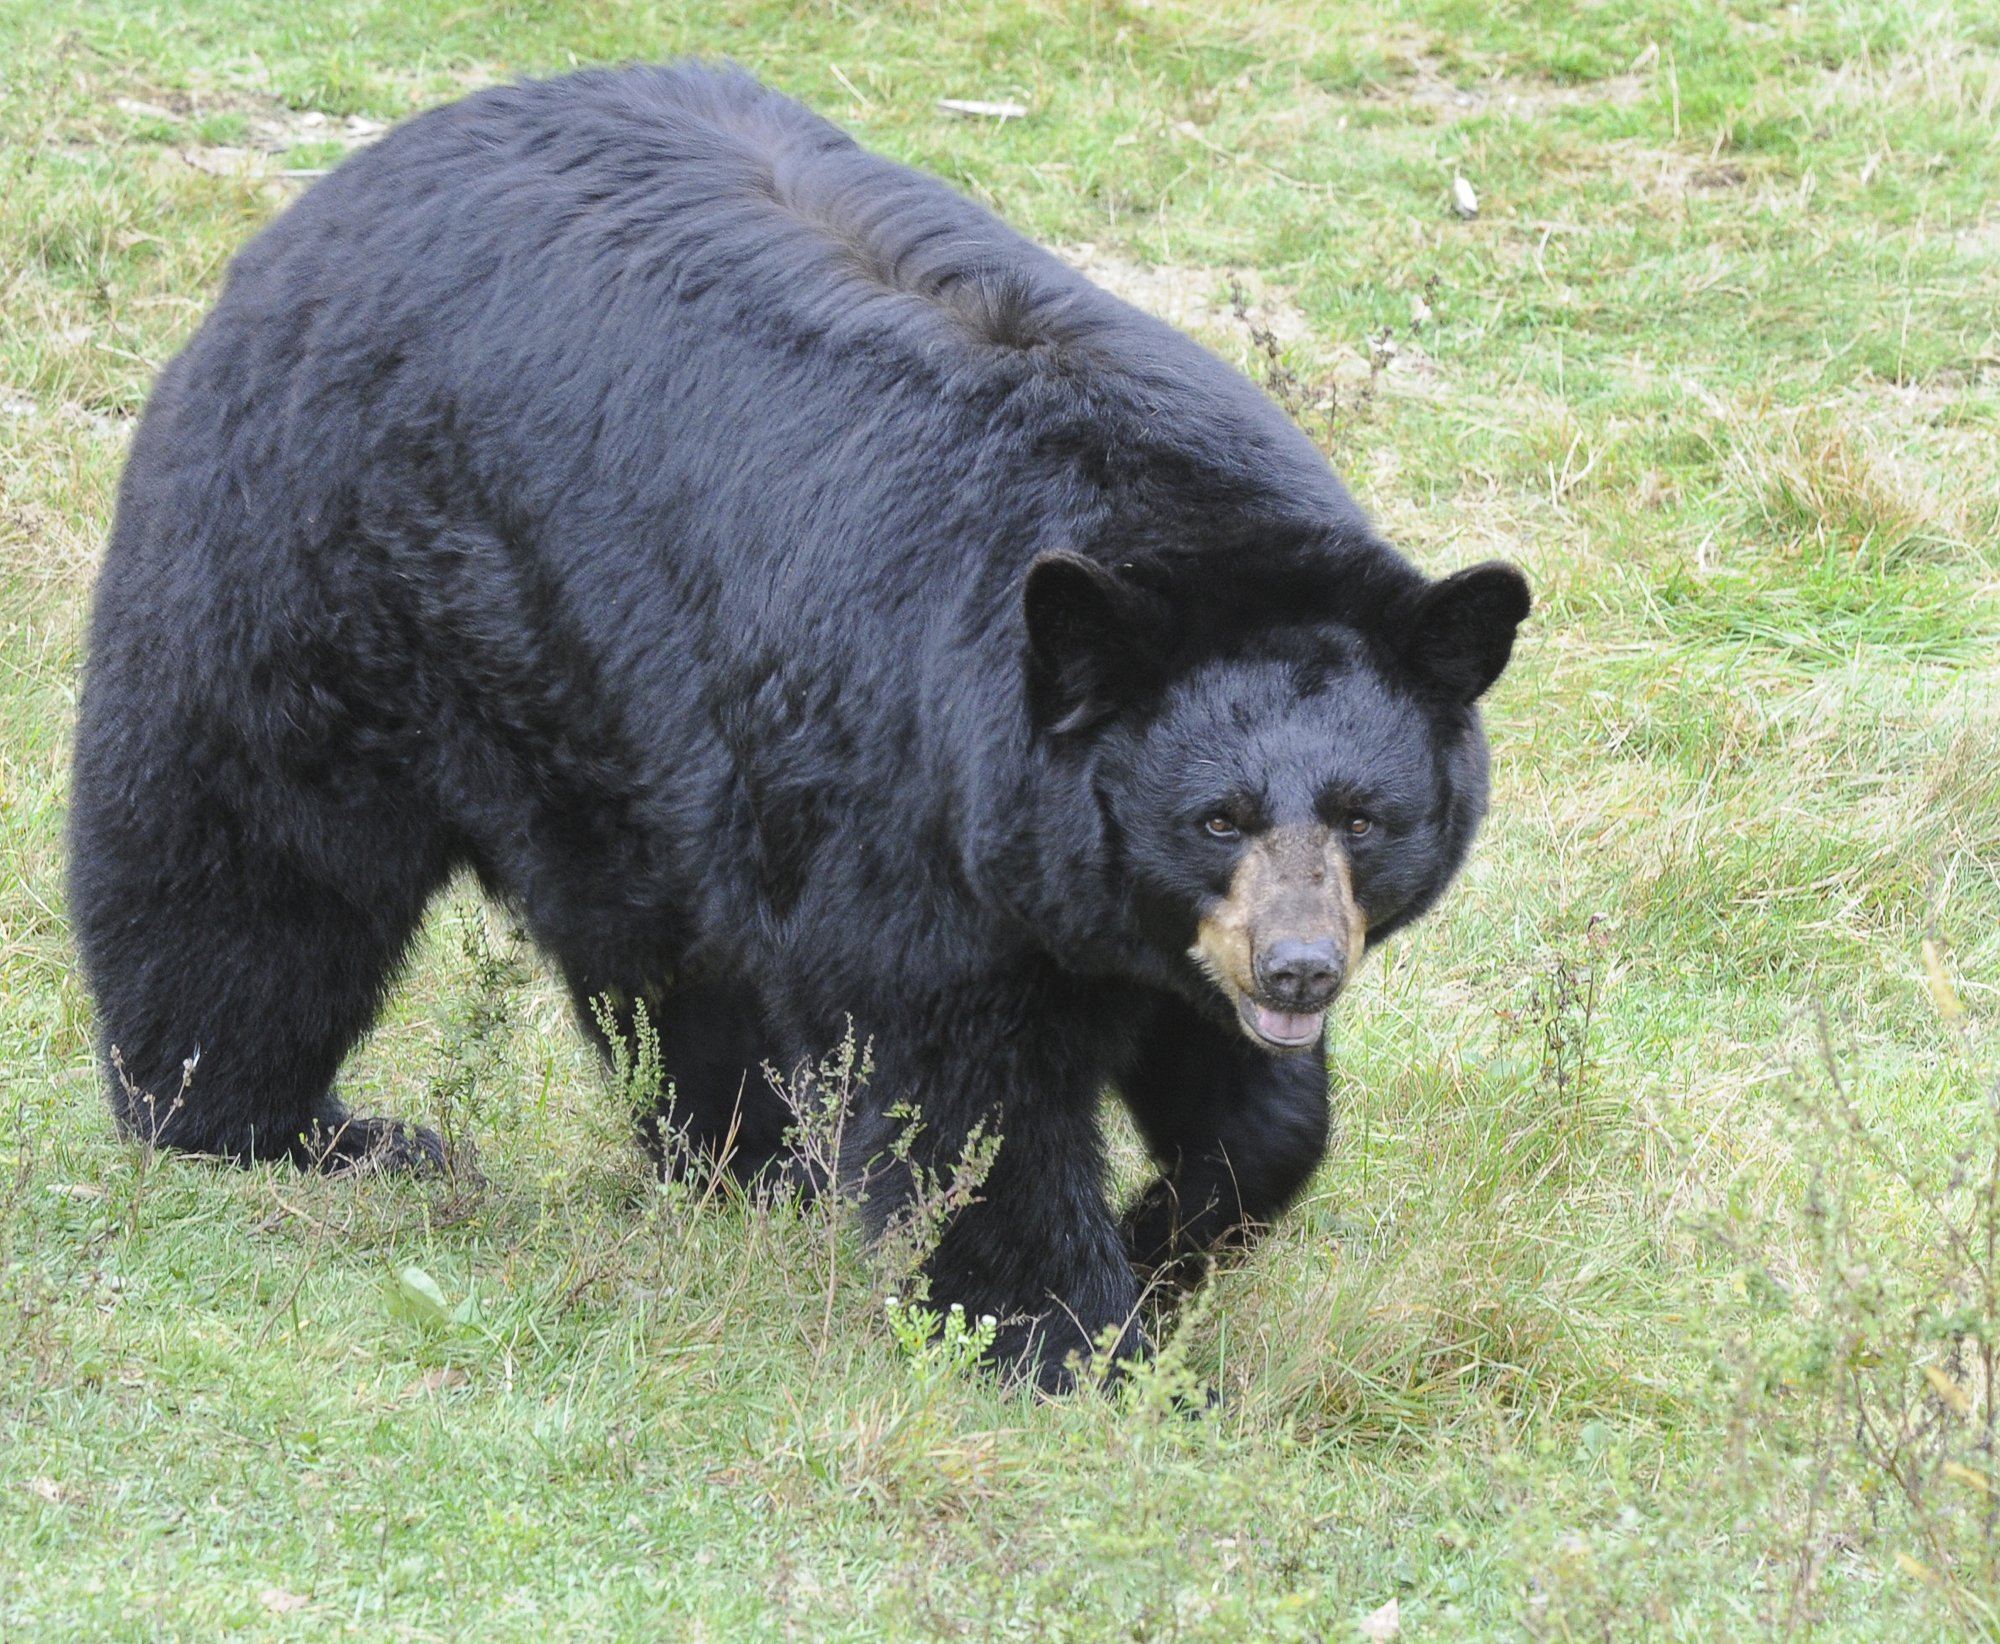 Black bears are among the animals at the Maine Wildlife Park in Gray Tues. Oct. 2, 2012.